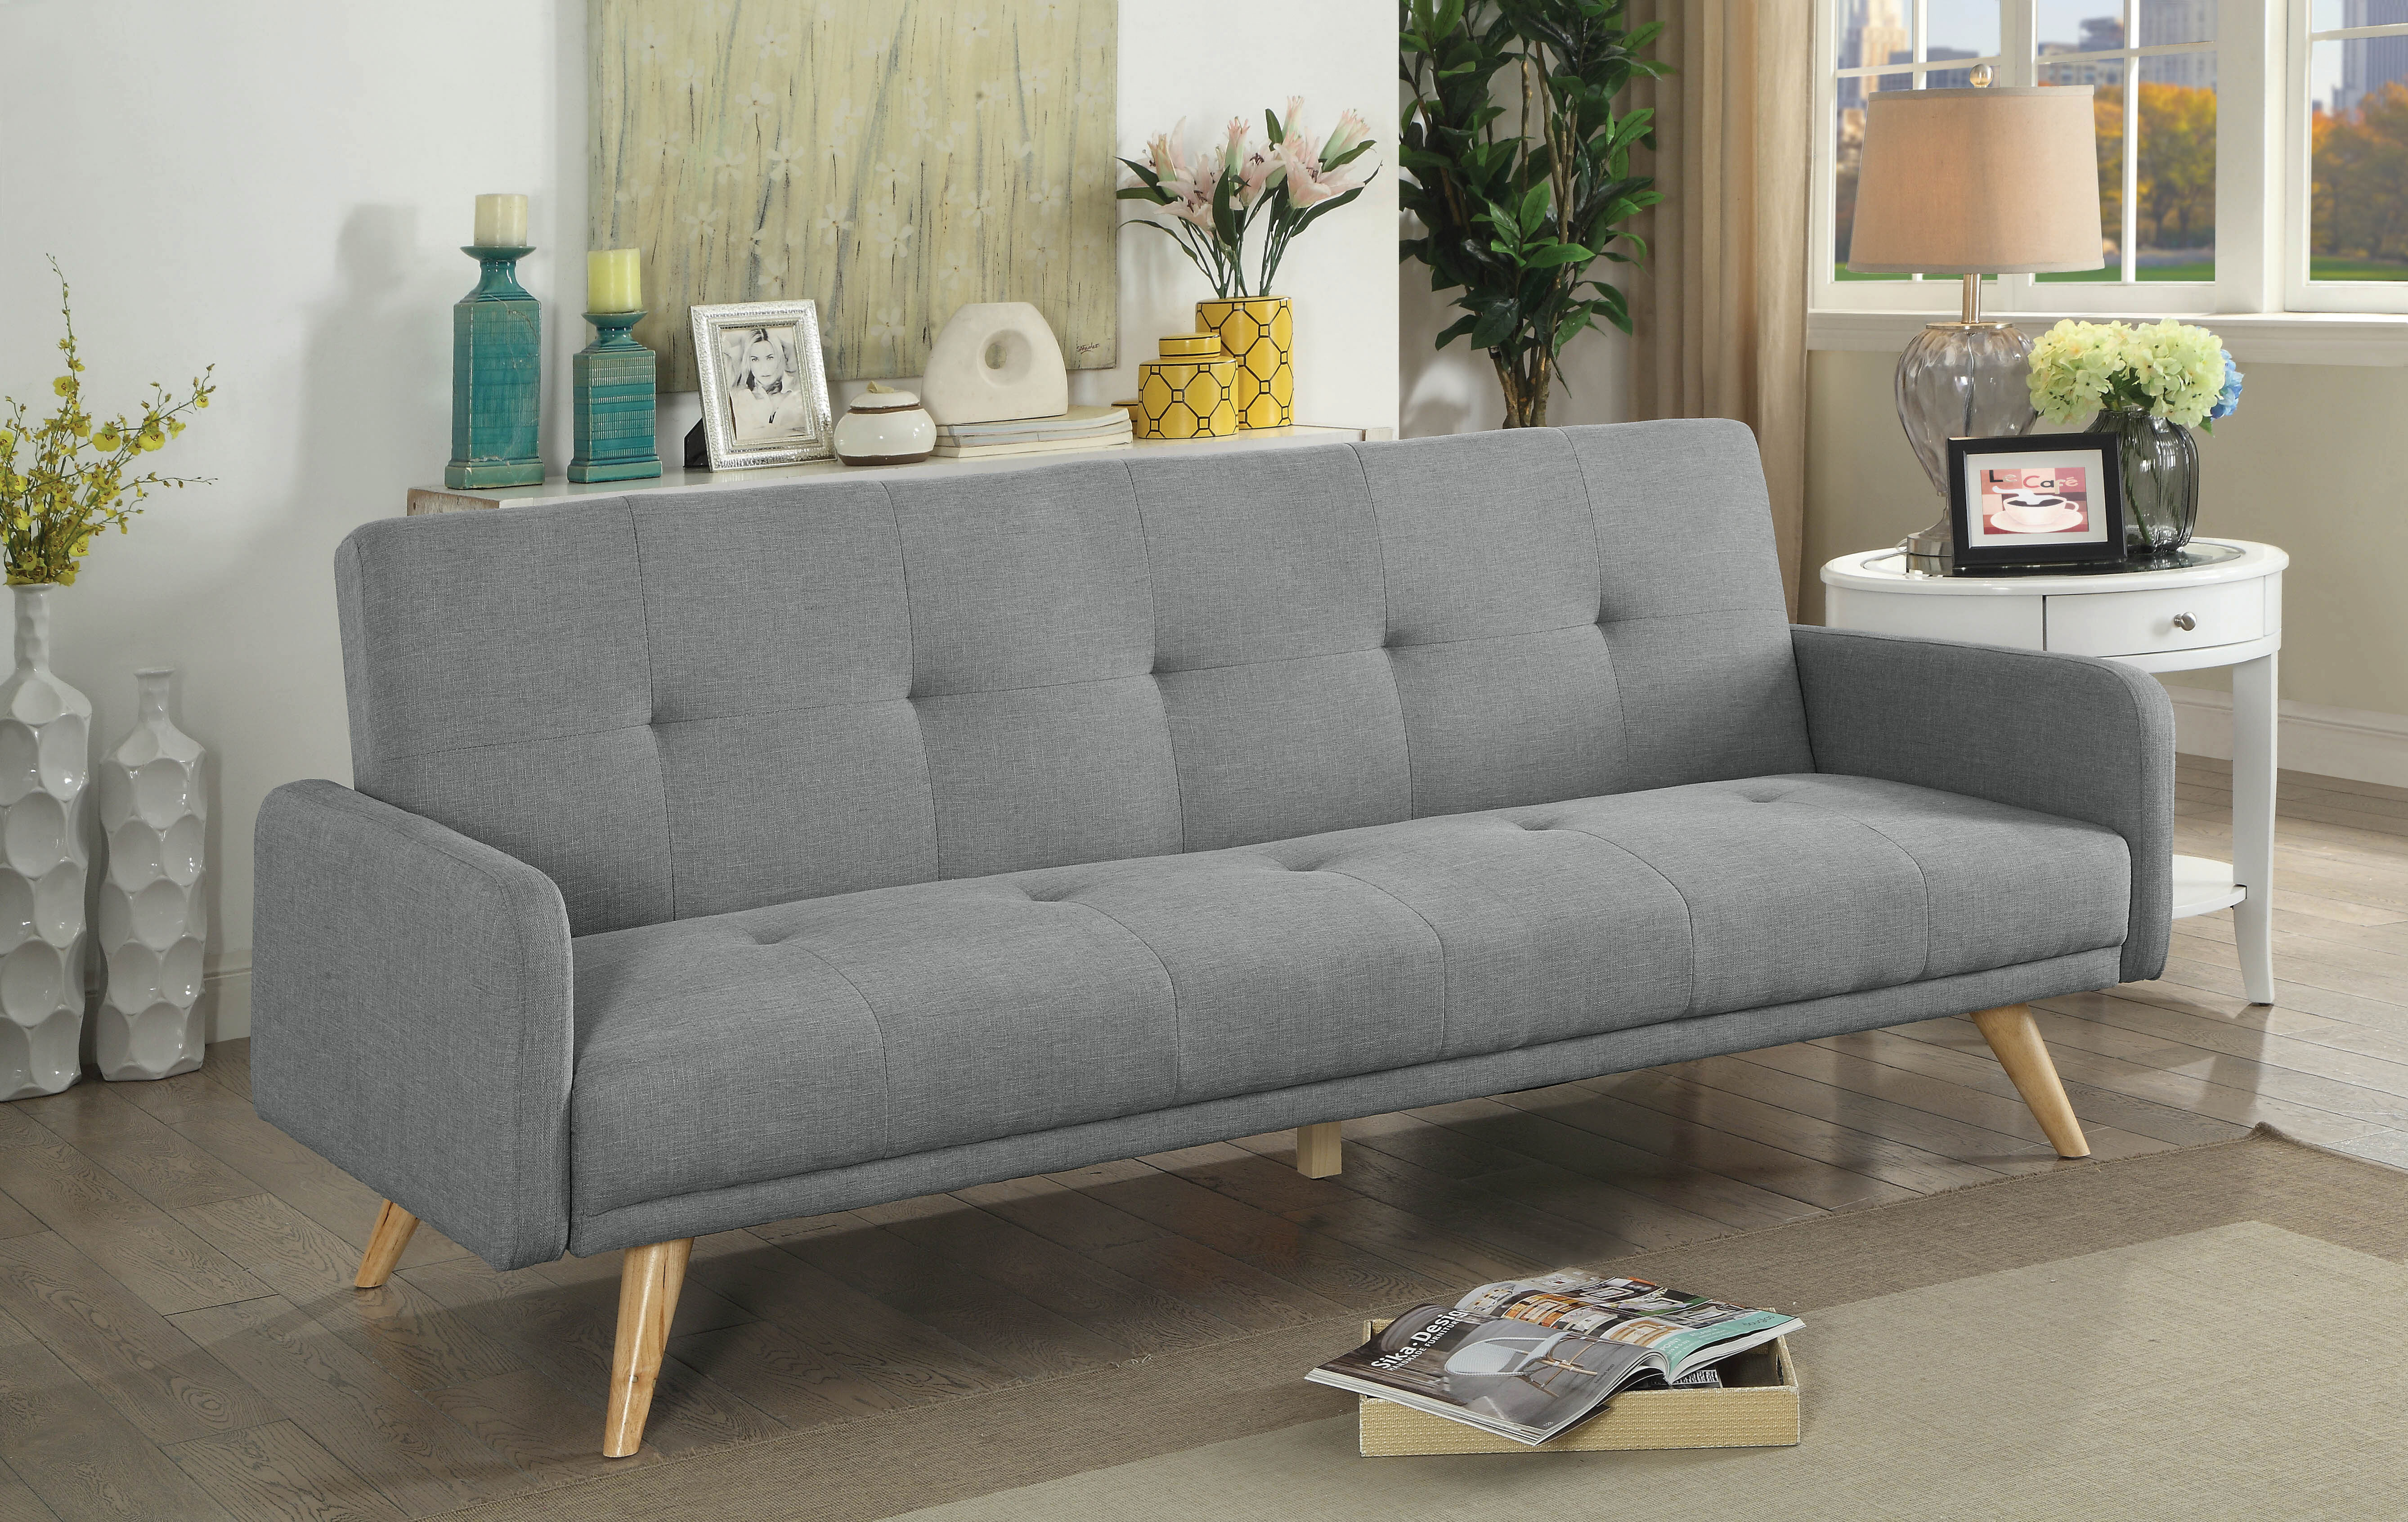 slipcover center microfiber sofa cover long futon ideas table for your concept rare stirring extraong futons extra images pictures pet sofassofa sofas slipcovers fancy